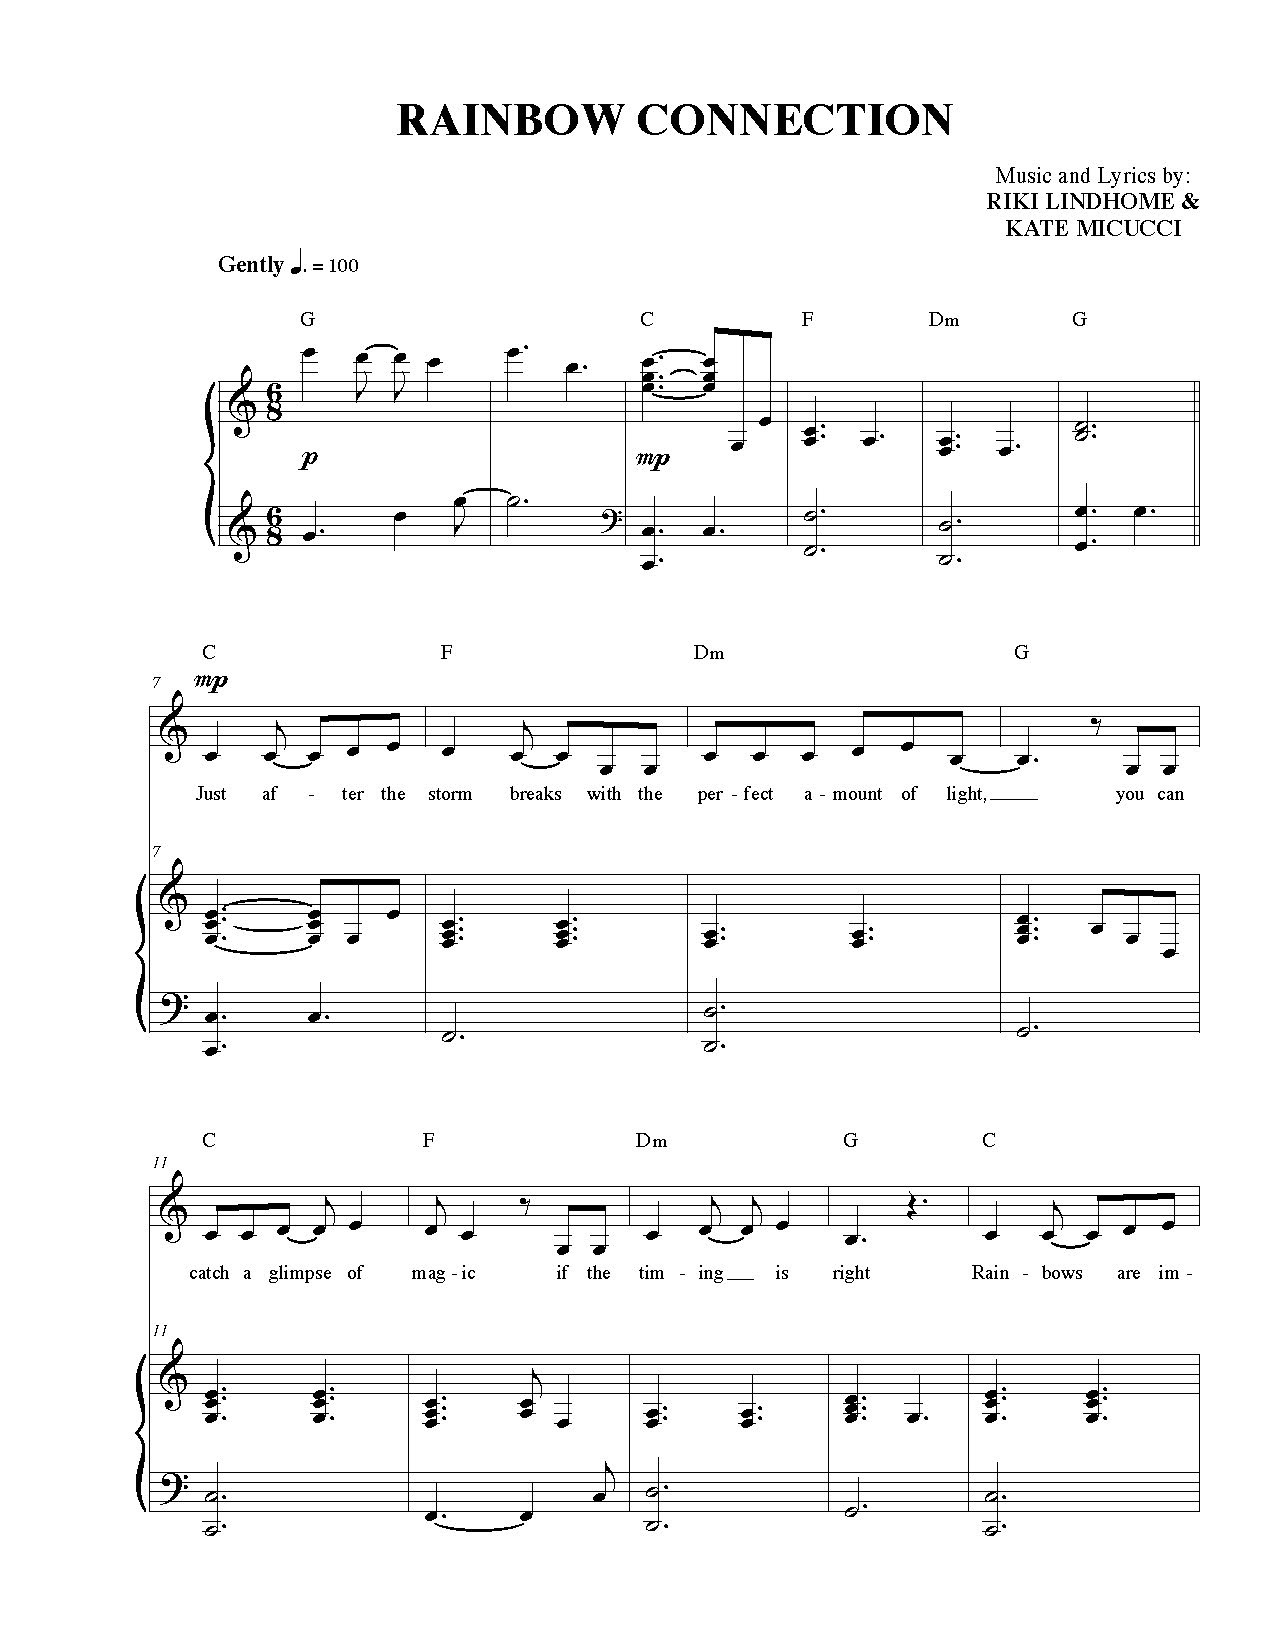 Rainbow Connection Chords Rainbow Connection Sheet Music Garfunkel And Oates